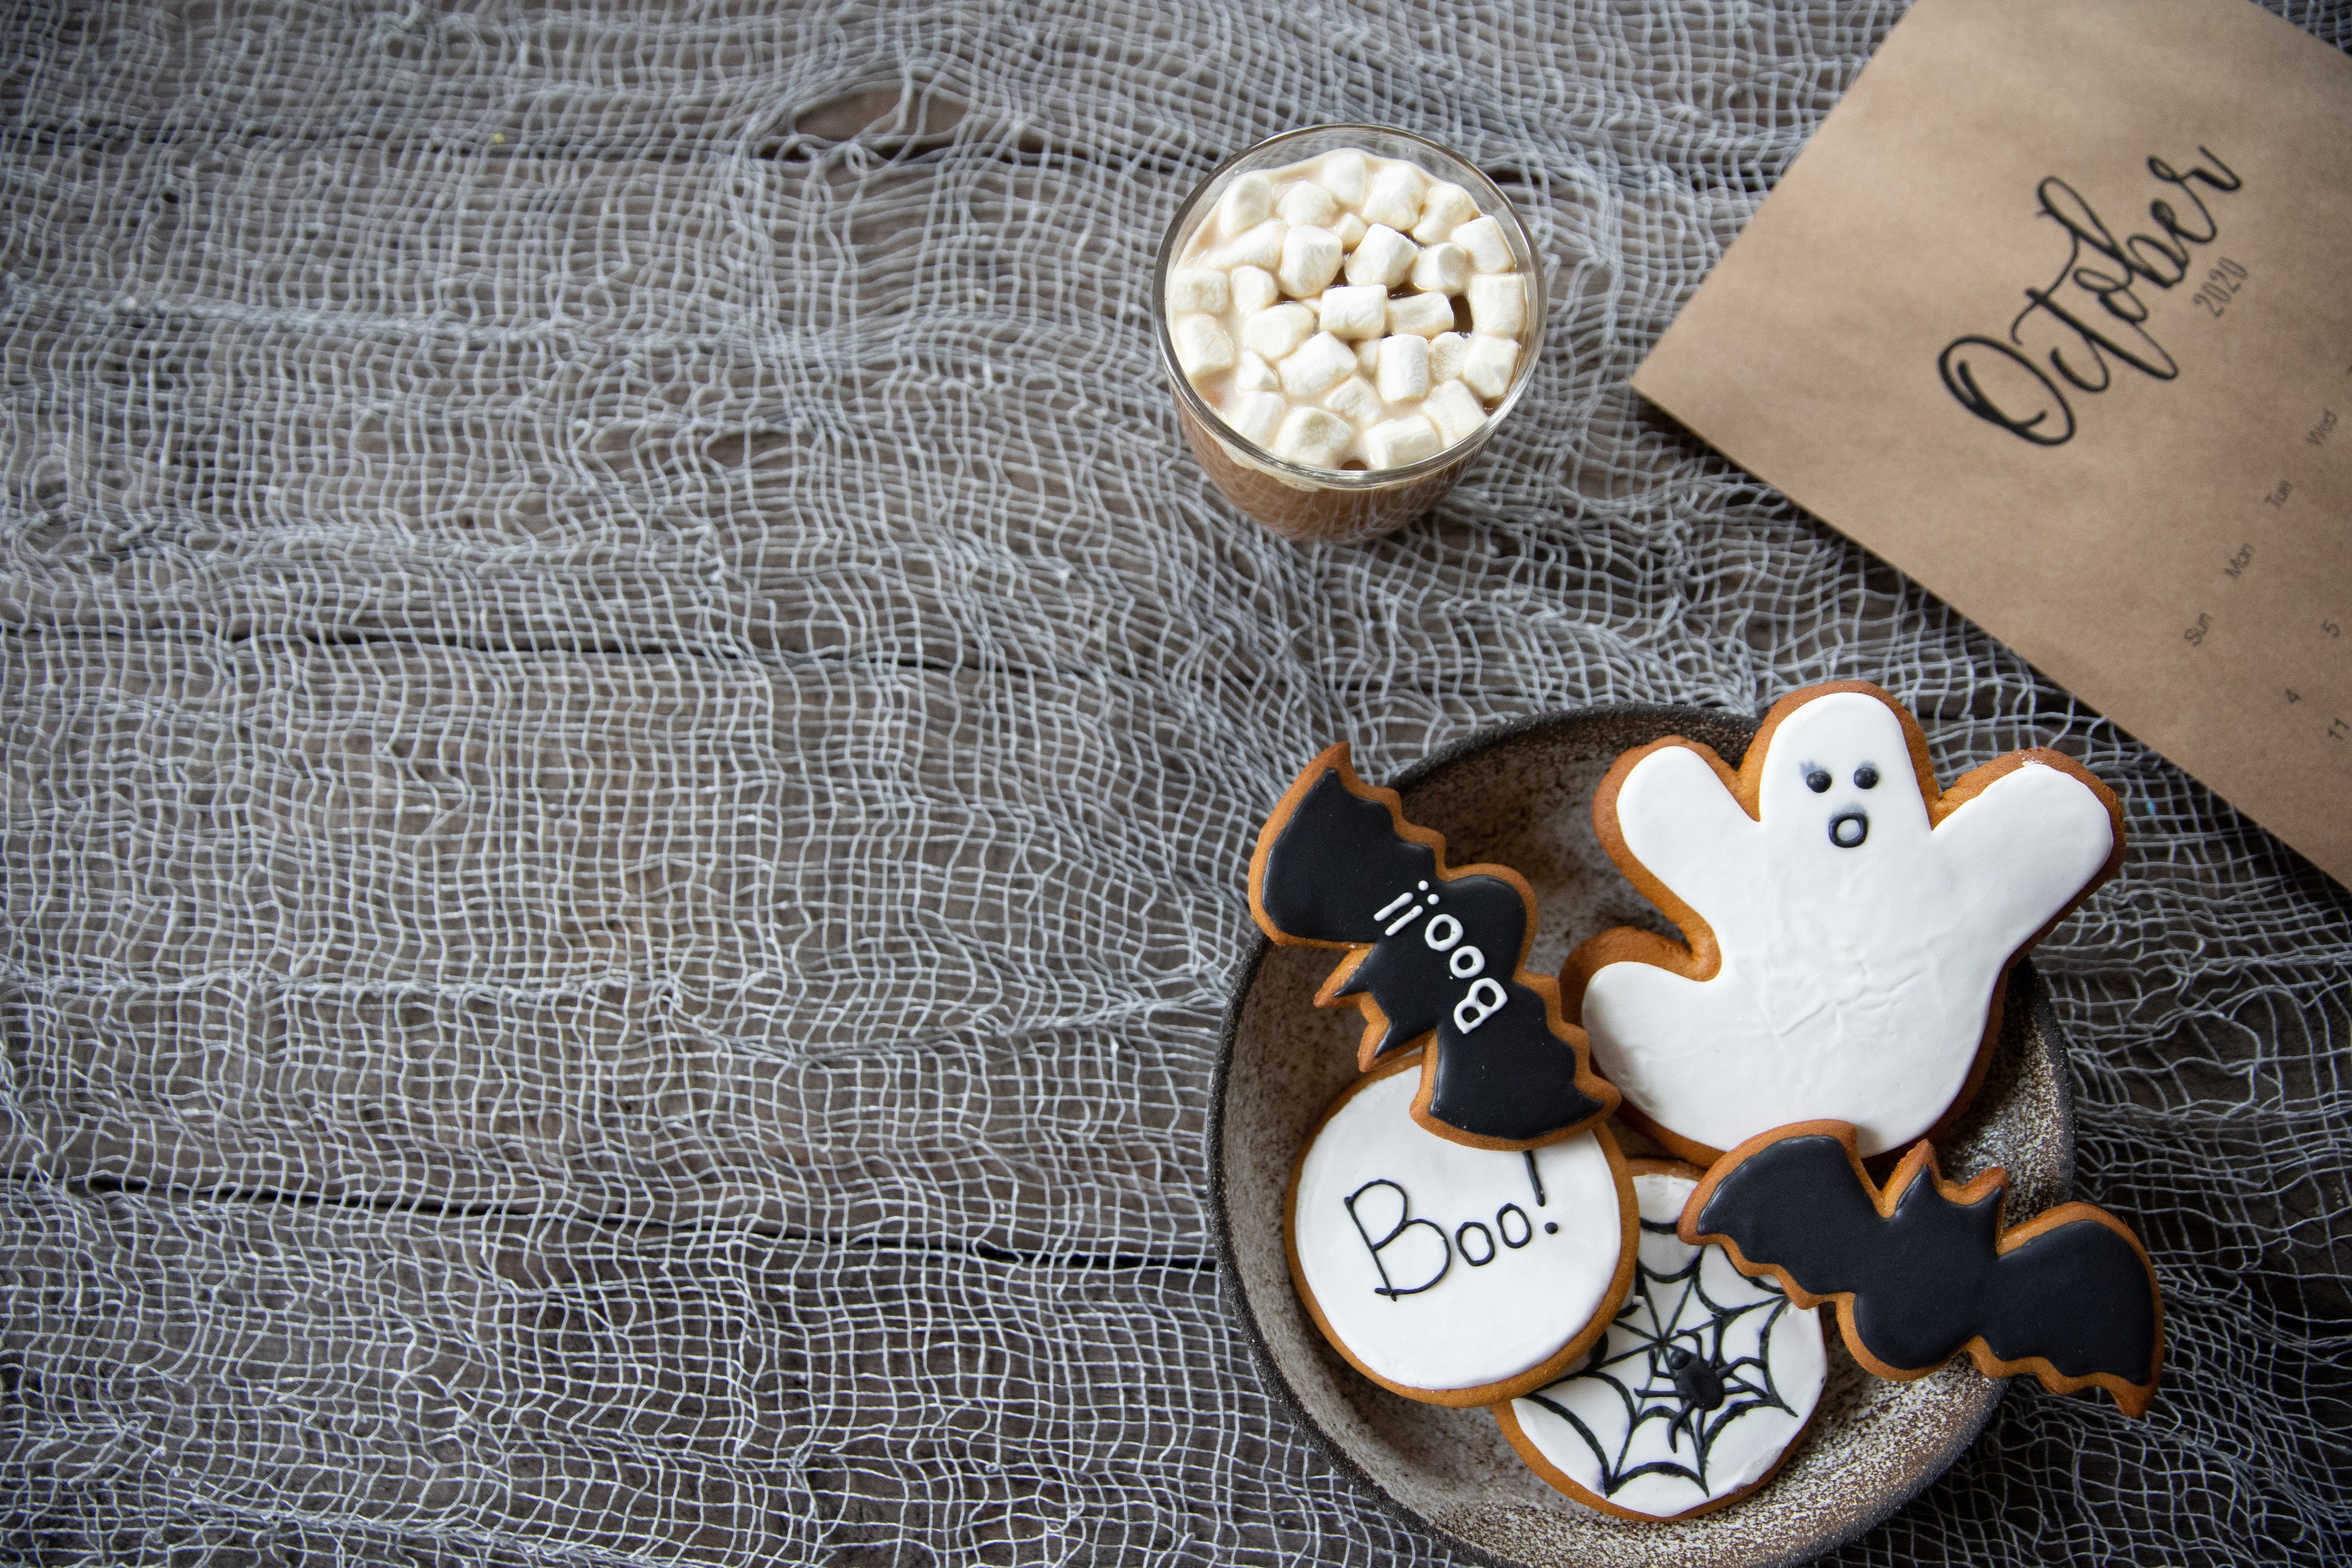 A selection of ghost biscuits in a bowl